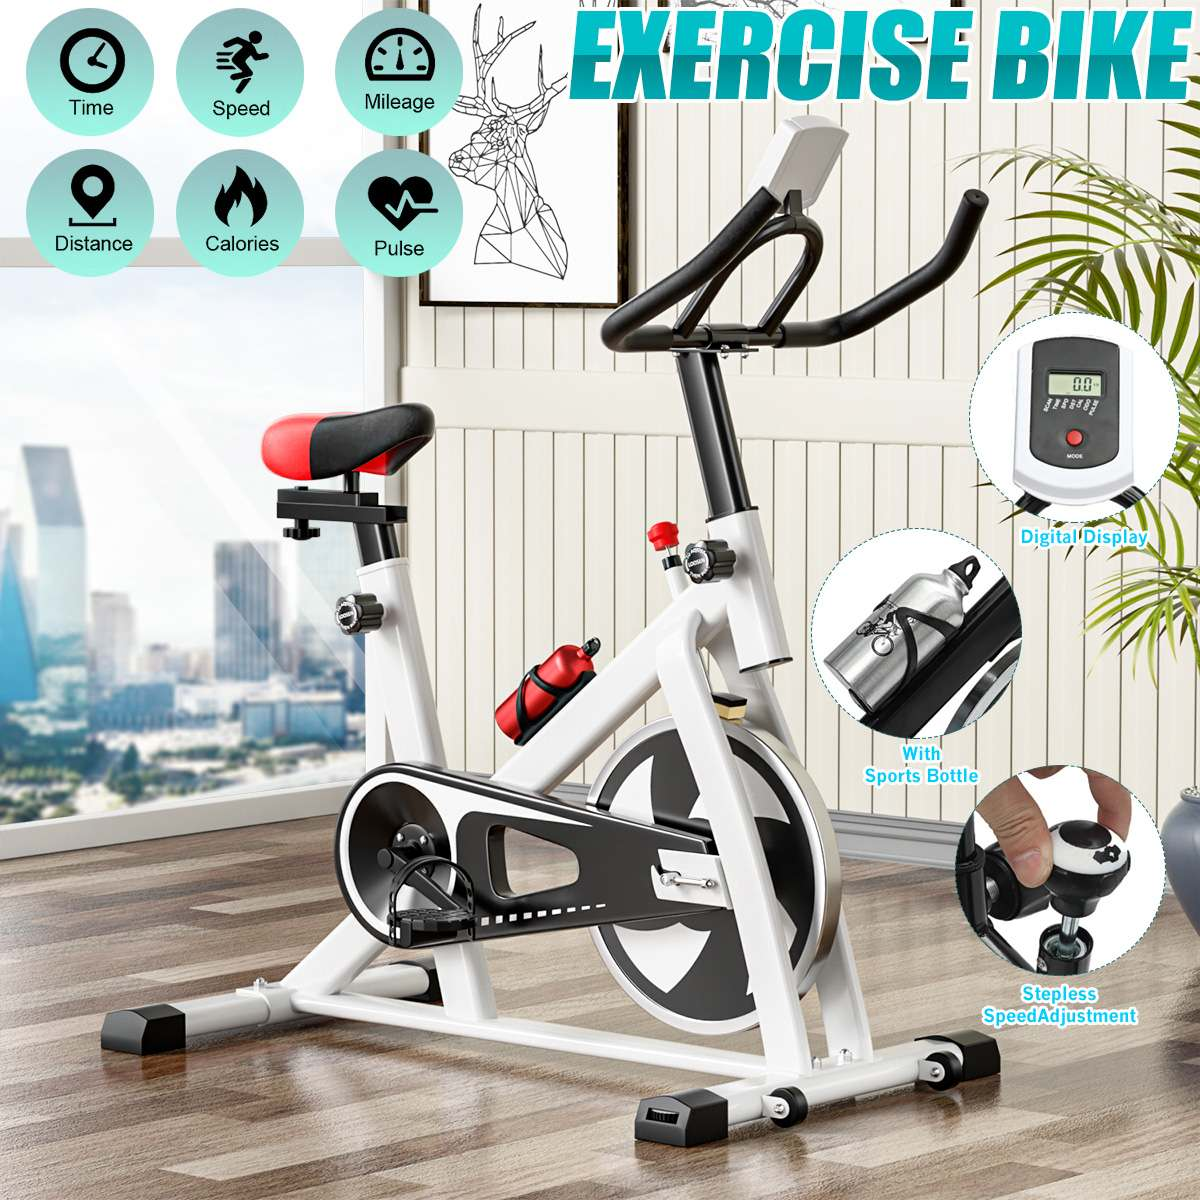 Exercise Bike Cardio Cycling Home Ultra-quiet Indoor Cycling Weight Loss Machine Fitness Gym Training Bicycle Fitness Equipment